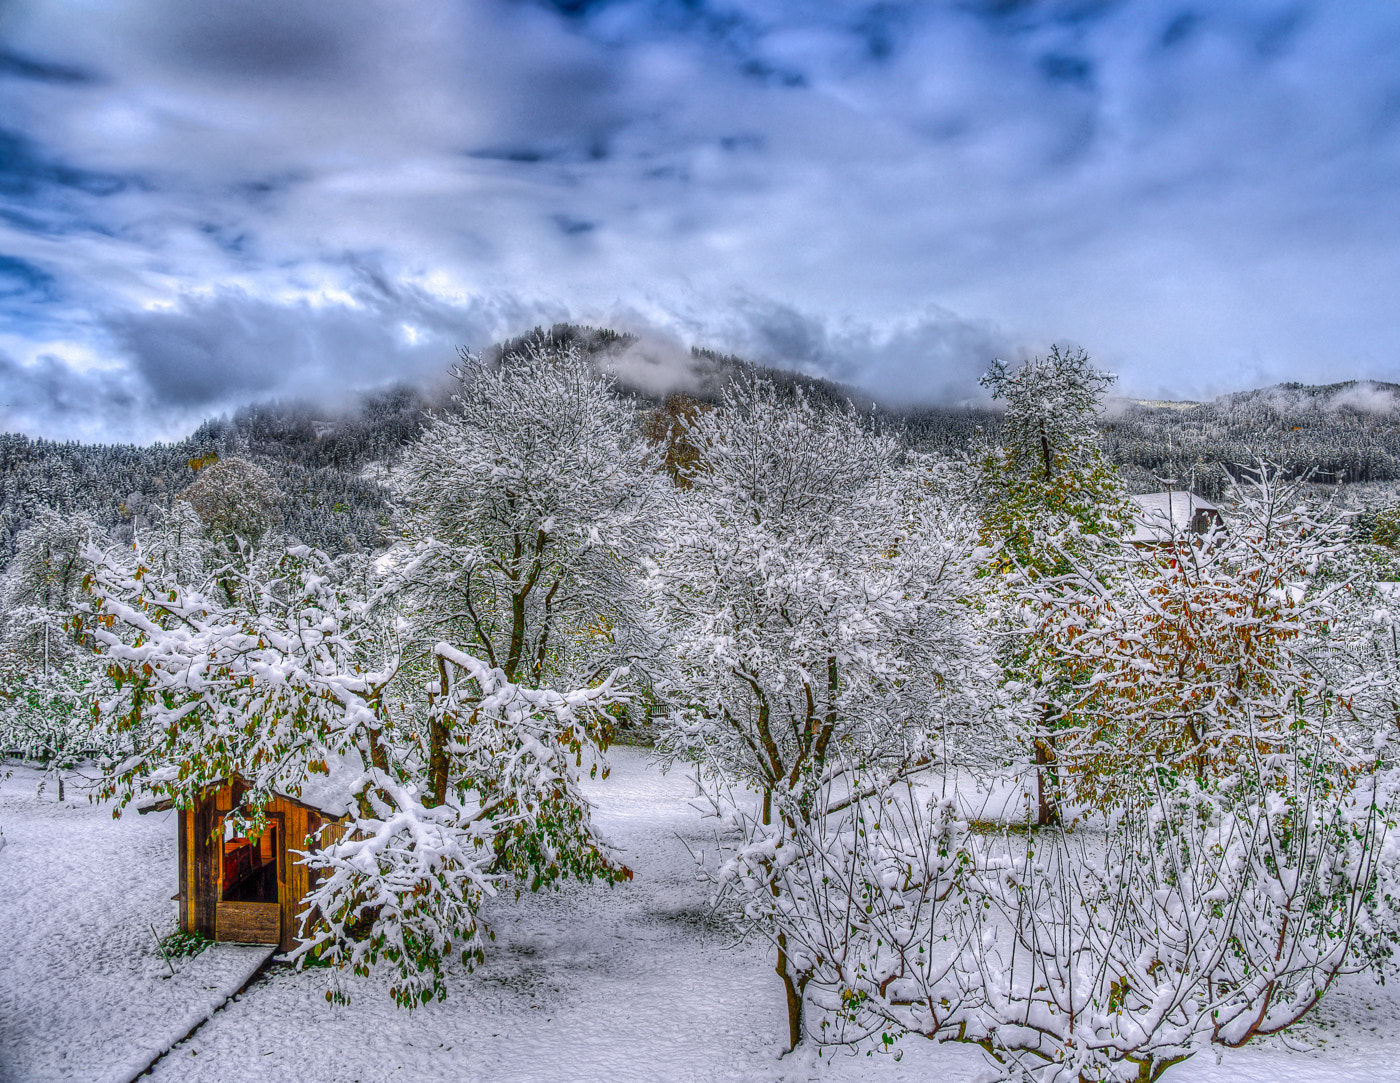 Photograph first snow this year by Paul Werner Suess on 500px